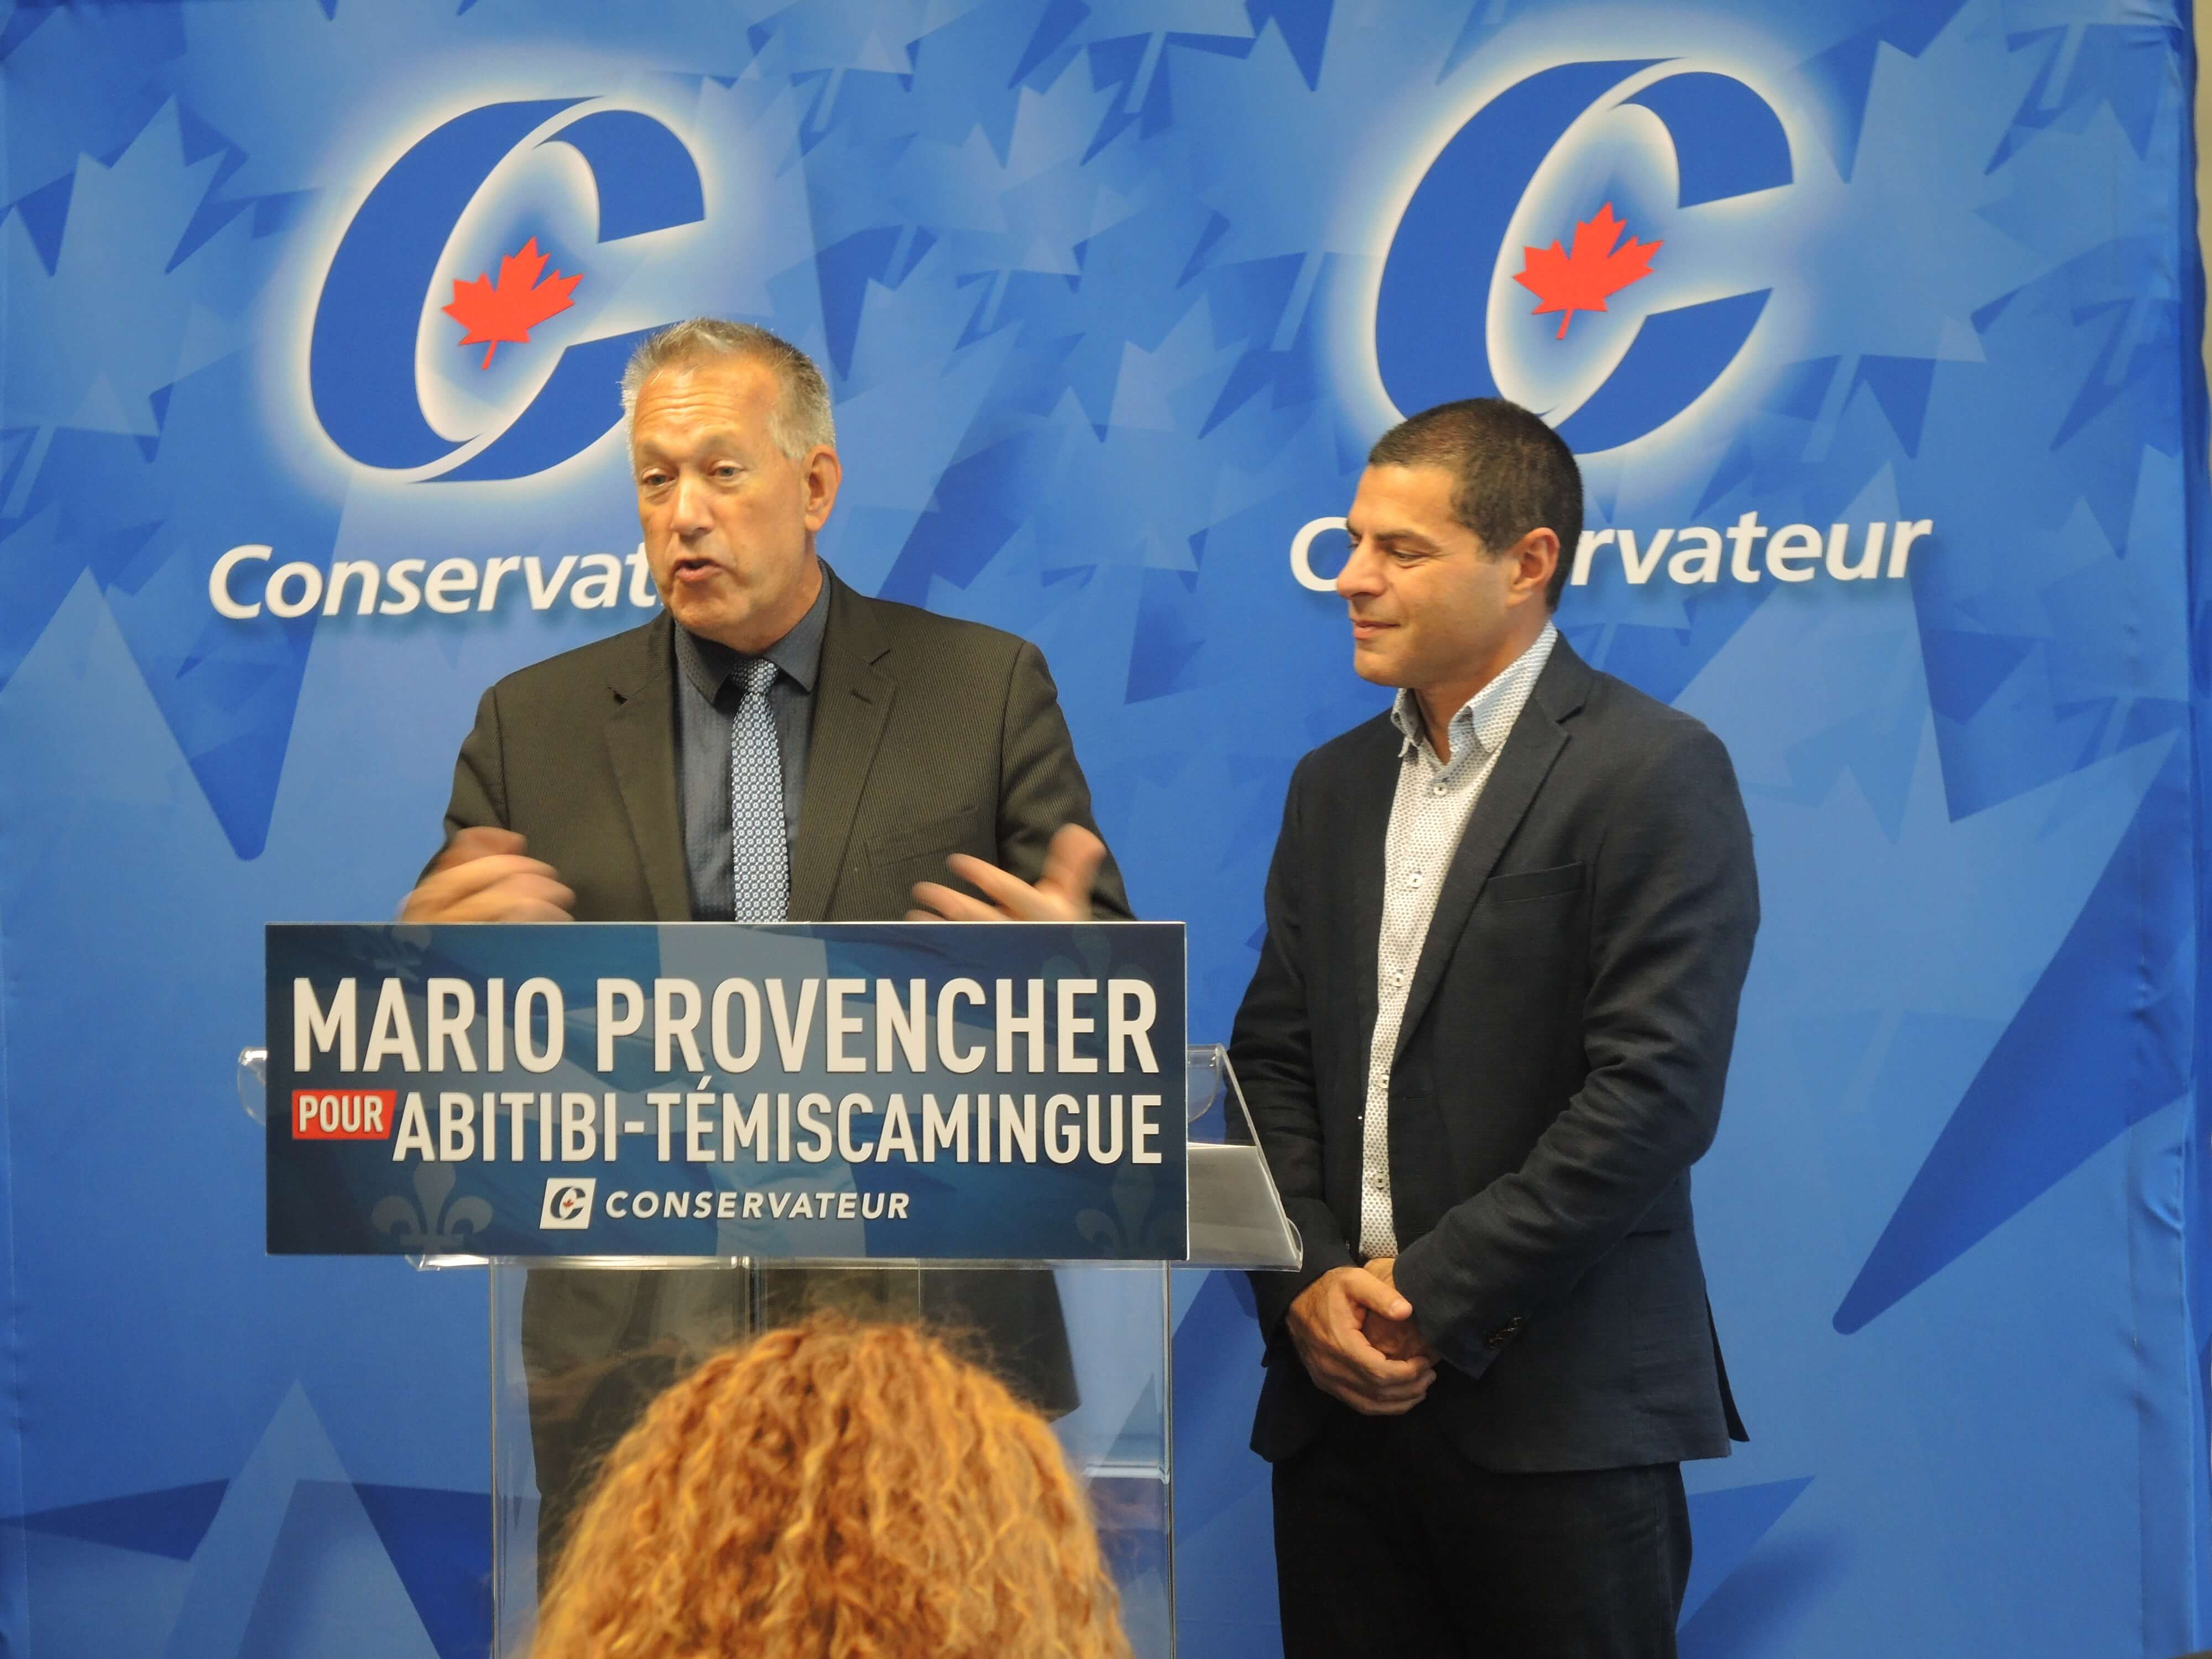 Mario Provencher candidat conservateur